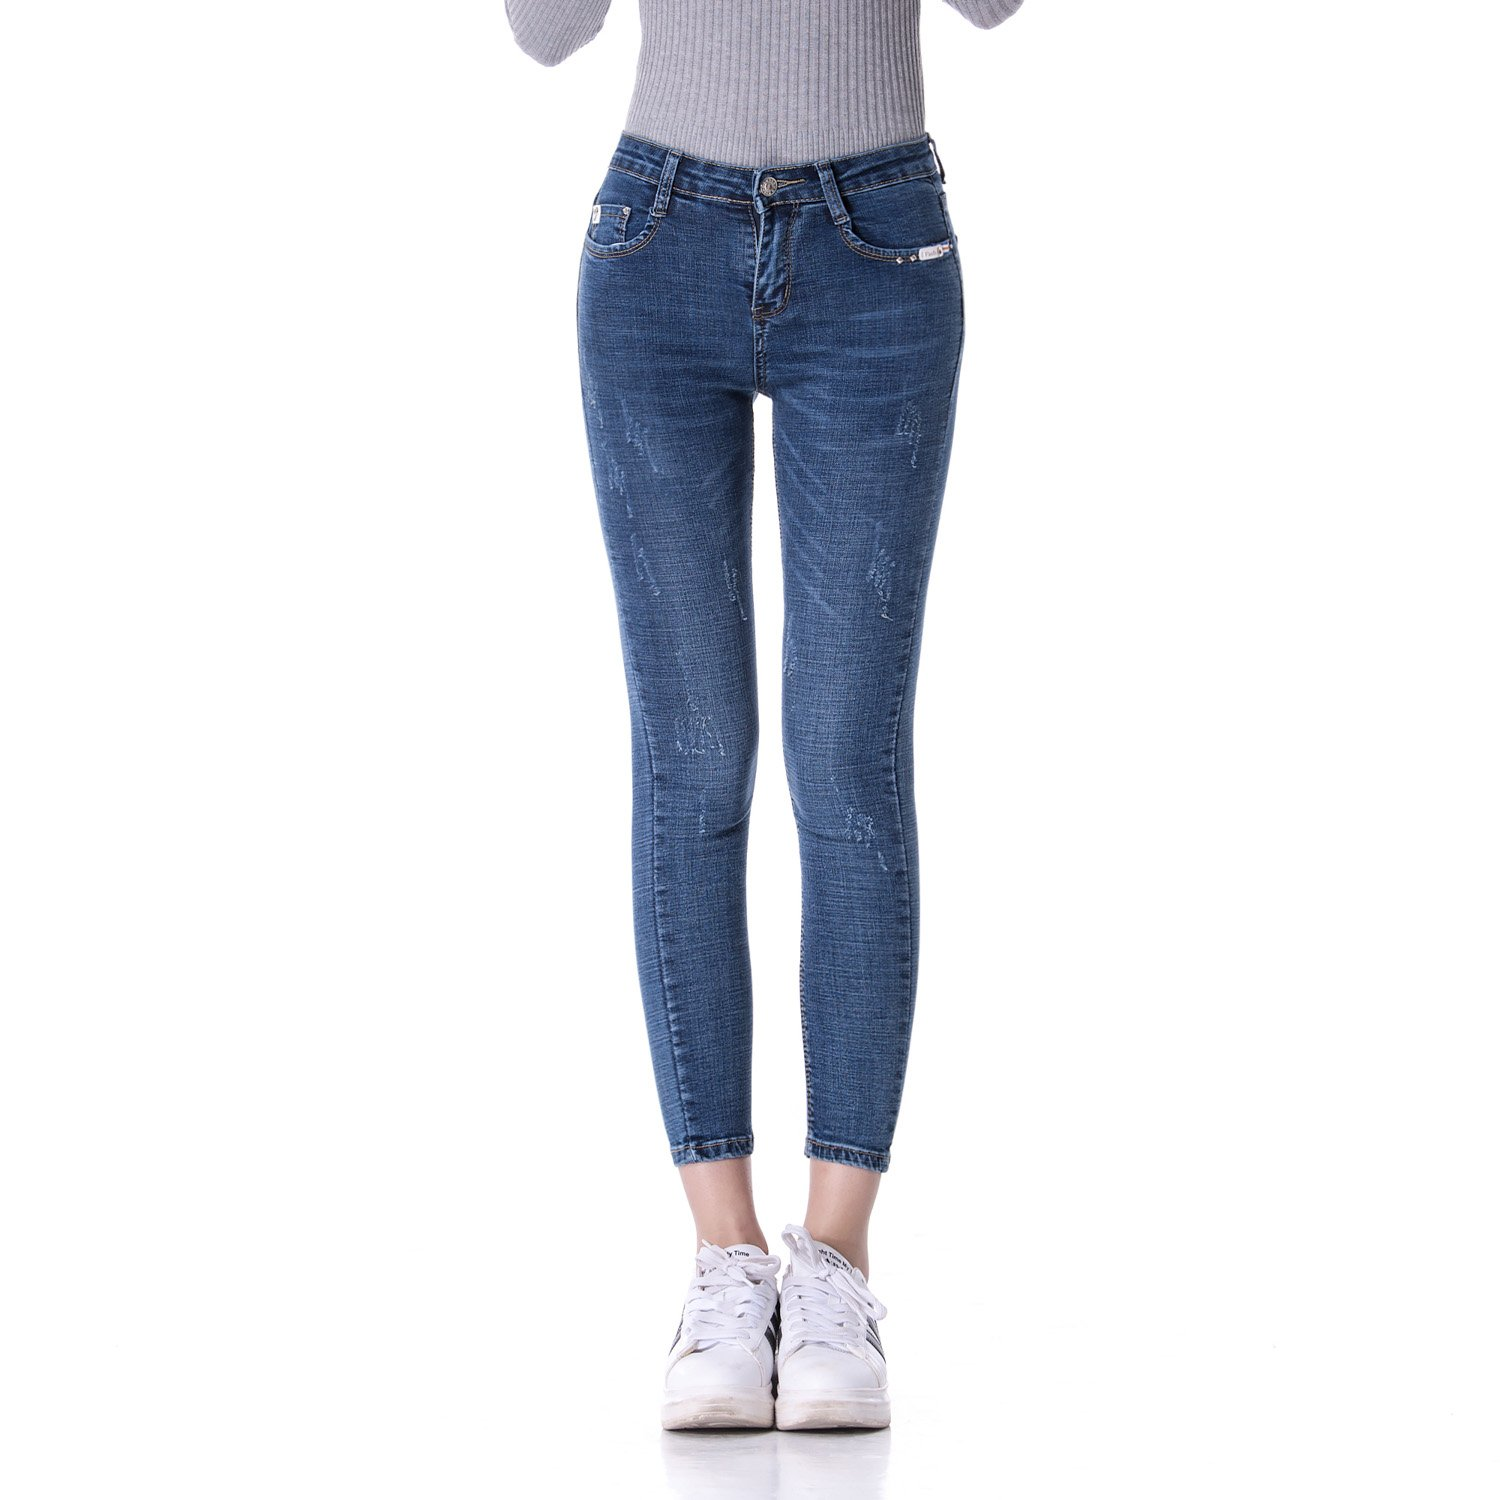 DSFMAILY Women's Juniors Distressed Slim Fit Stretchy Skinny Jeans with accesory (28, Blue)